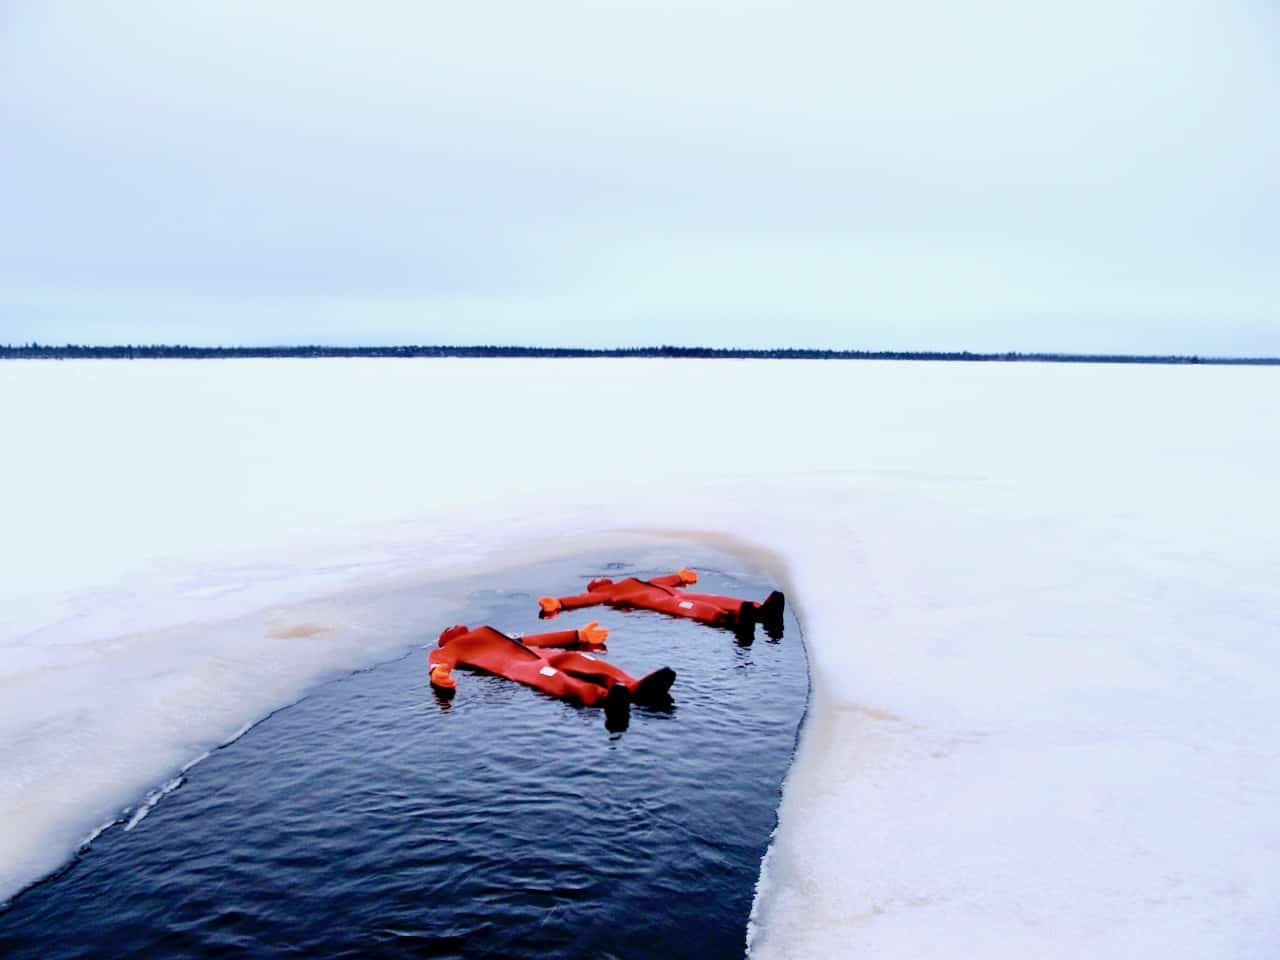 Ice-floating experience in Finnish Lapland